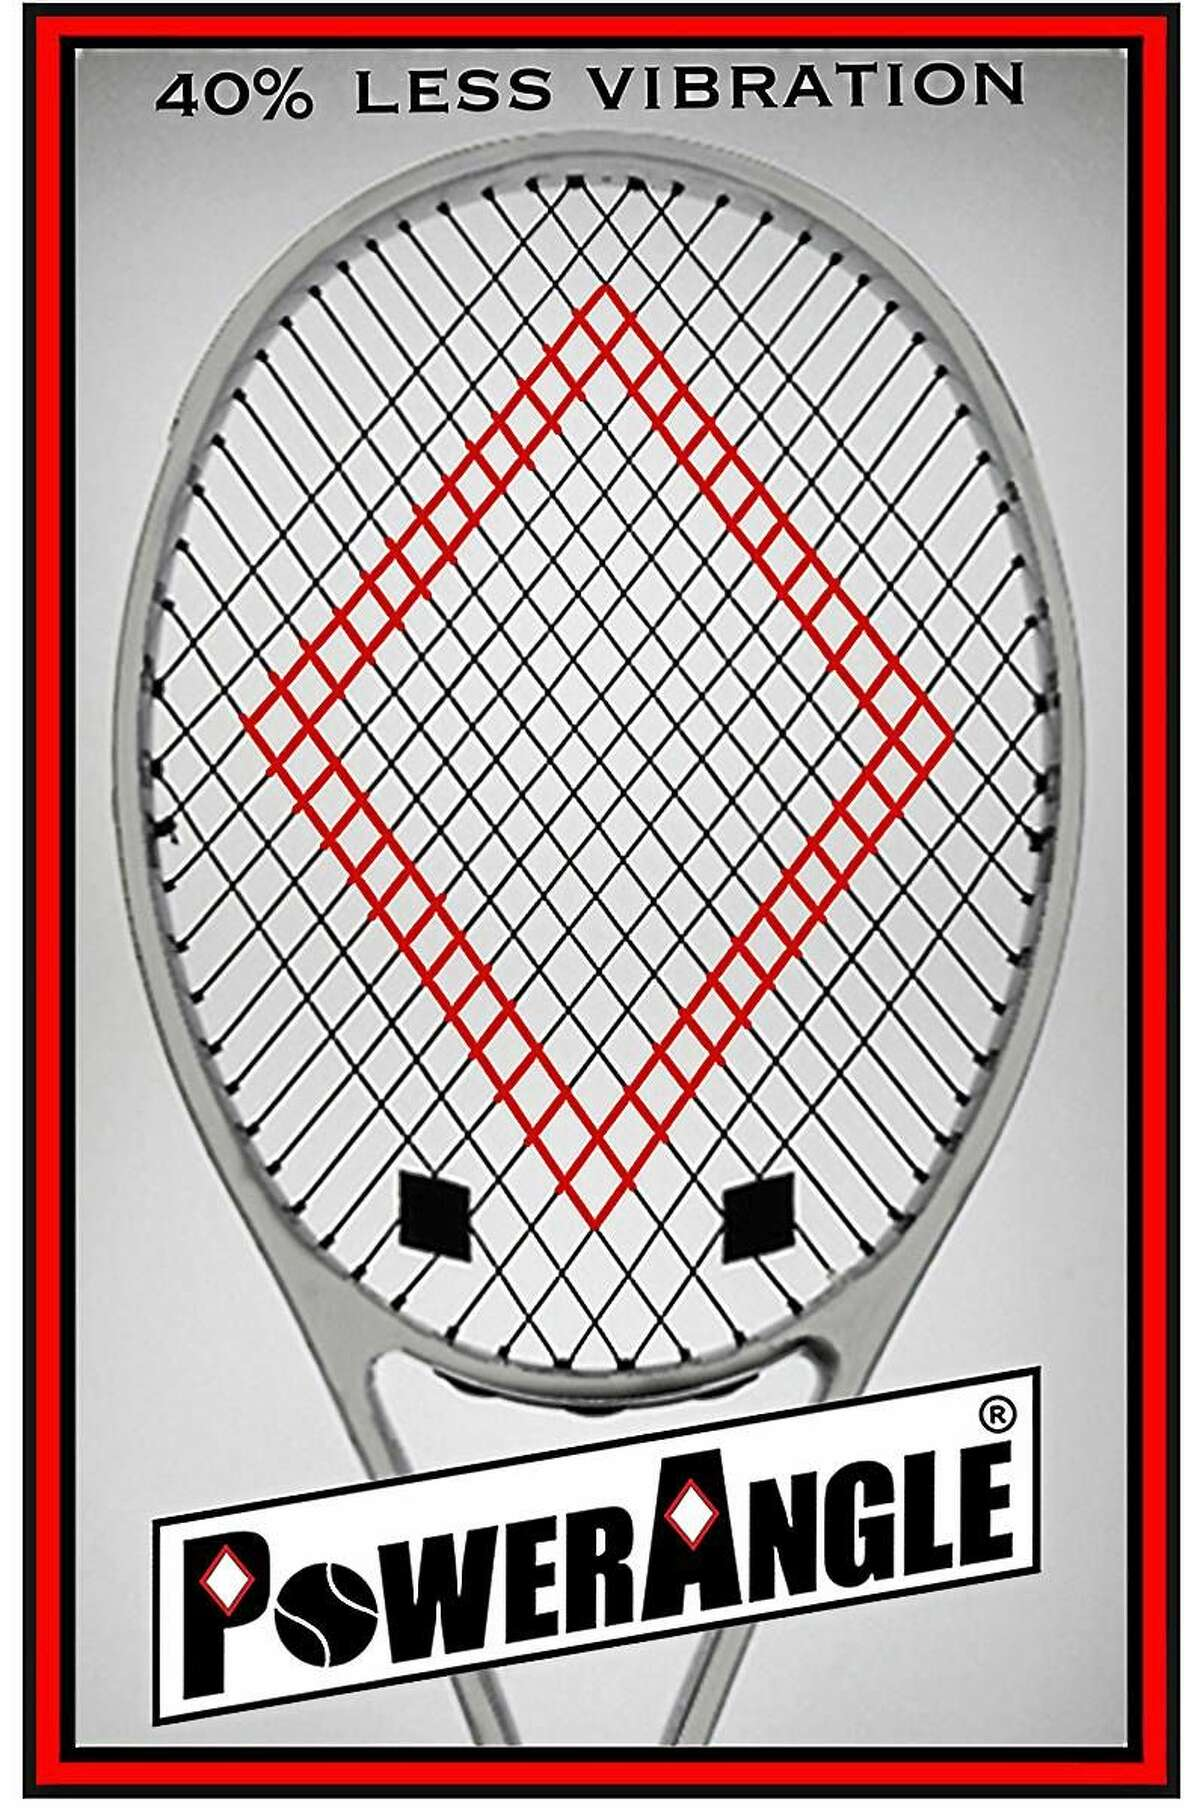 New York-based PowerAngle Racket will have a booth at the Connecticut Open from Aug. 27-29.